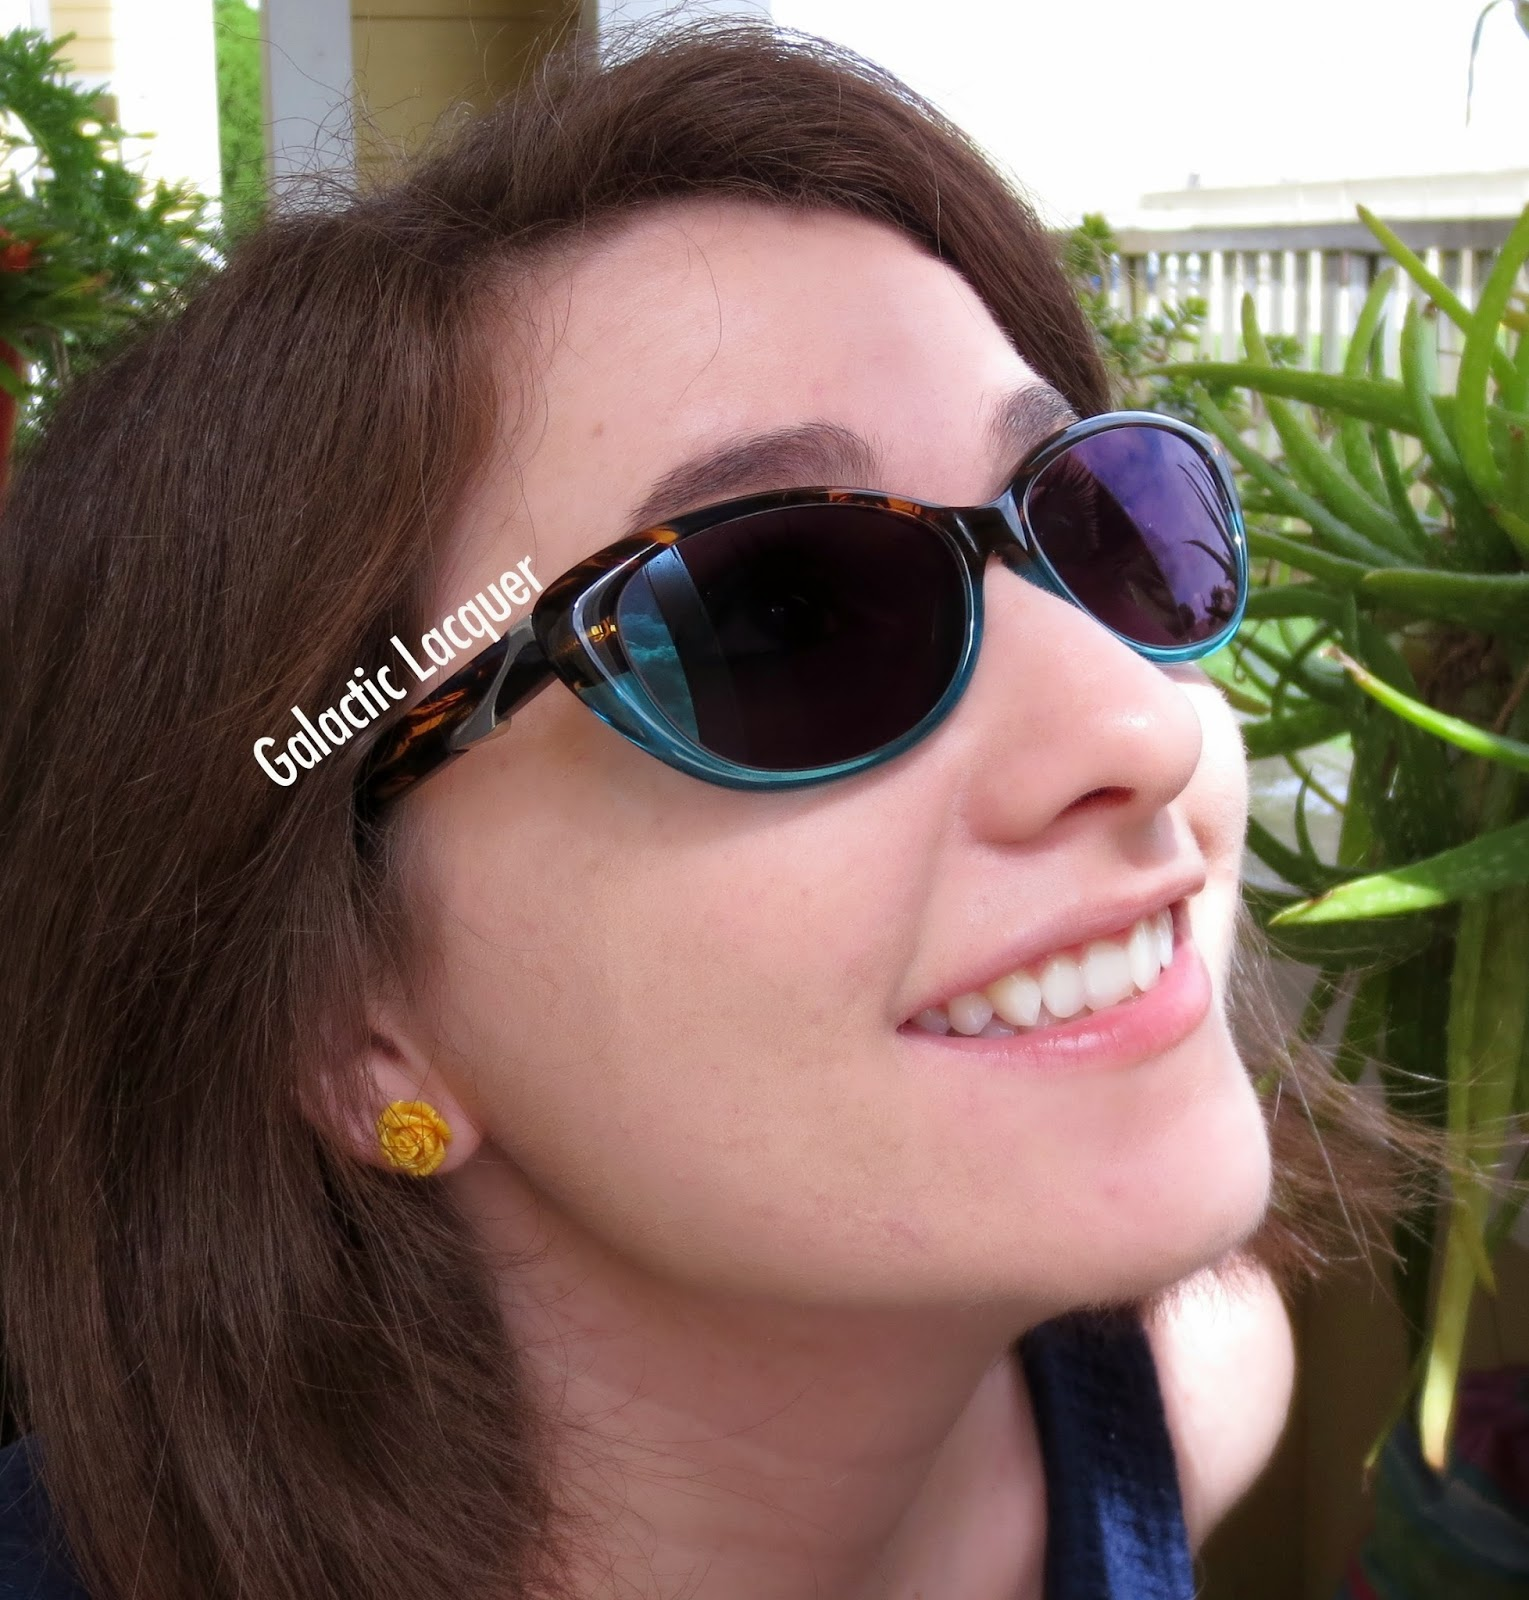 ad88f0f62e5 I would highly recommend these sunglasses - I love the shape